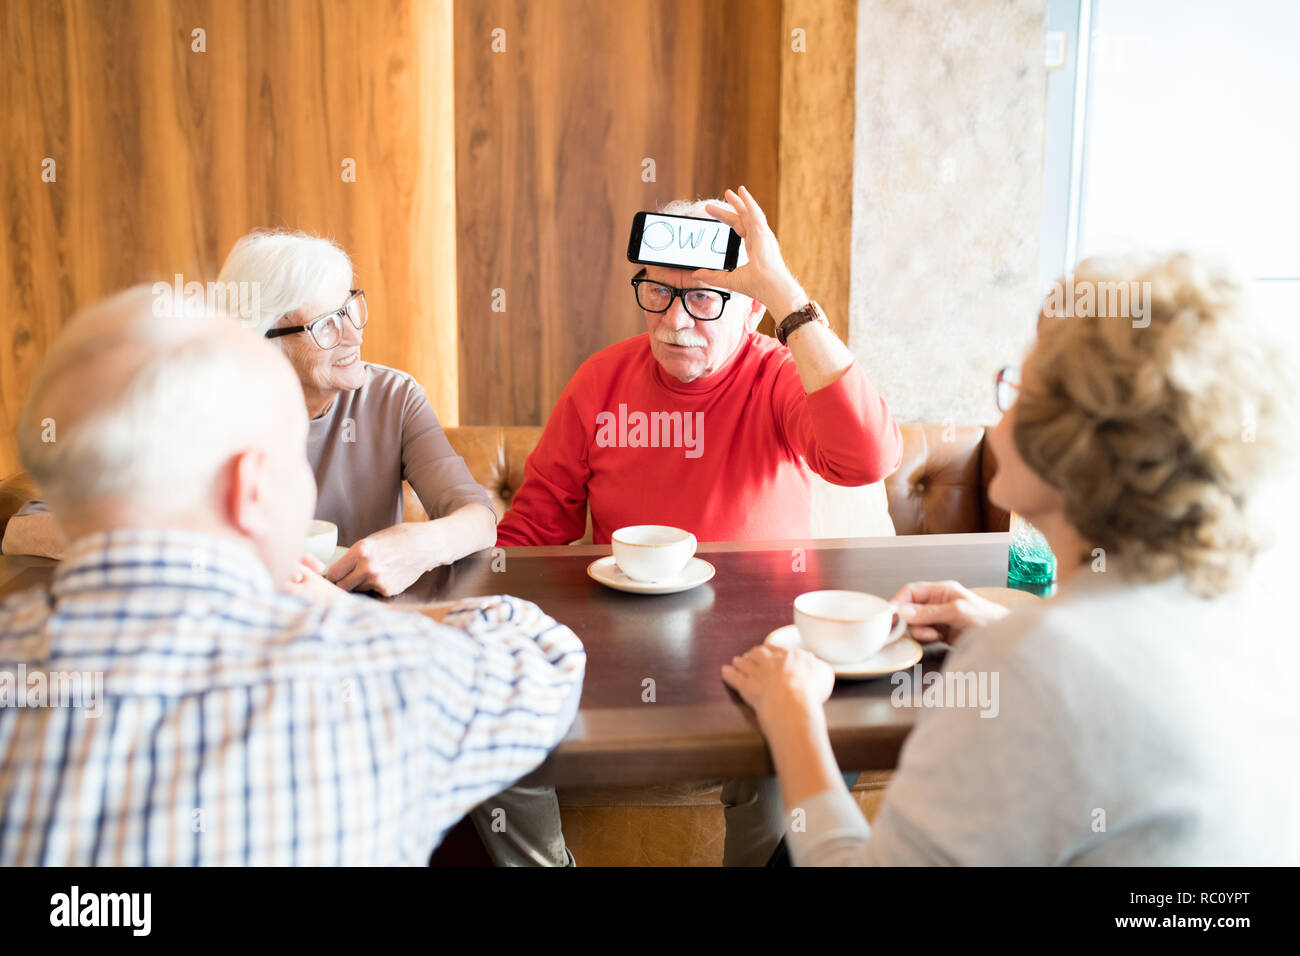 Seniors playing word-guessing game in cafe - Stock Image